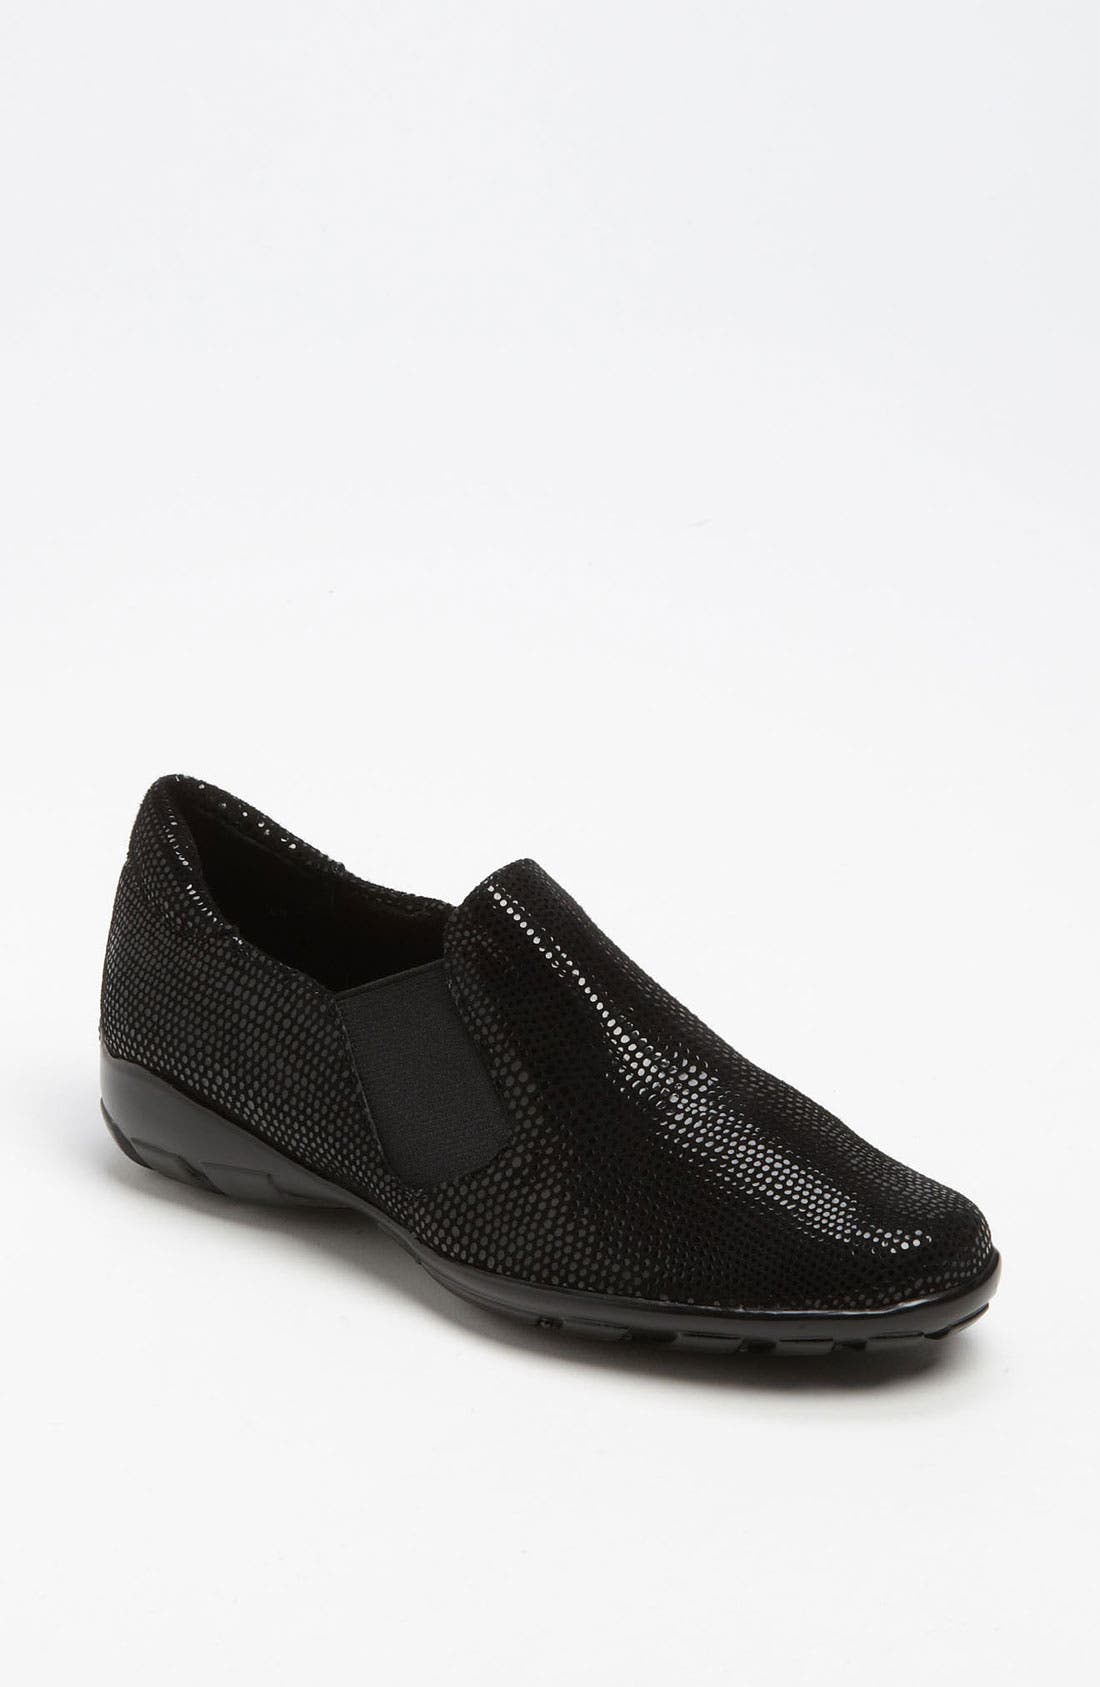 Alternate Image 1 Selected - VANELi 'Anemone' Loafer (Online Only)